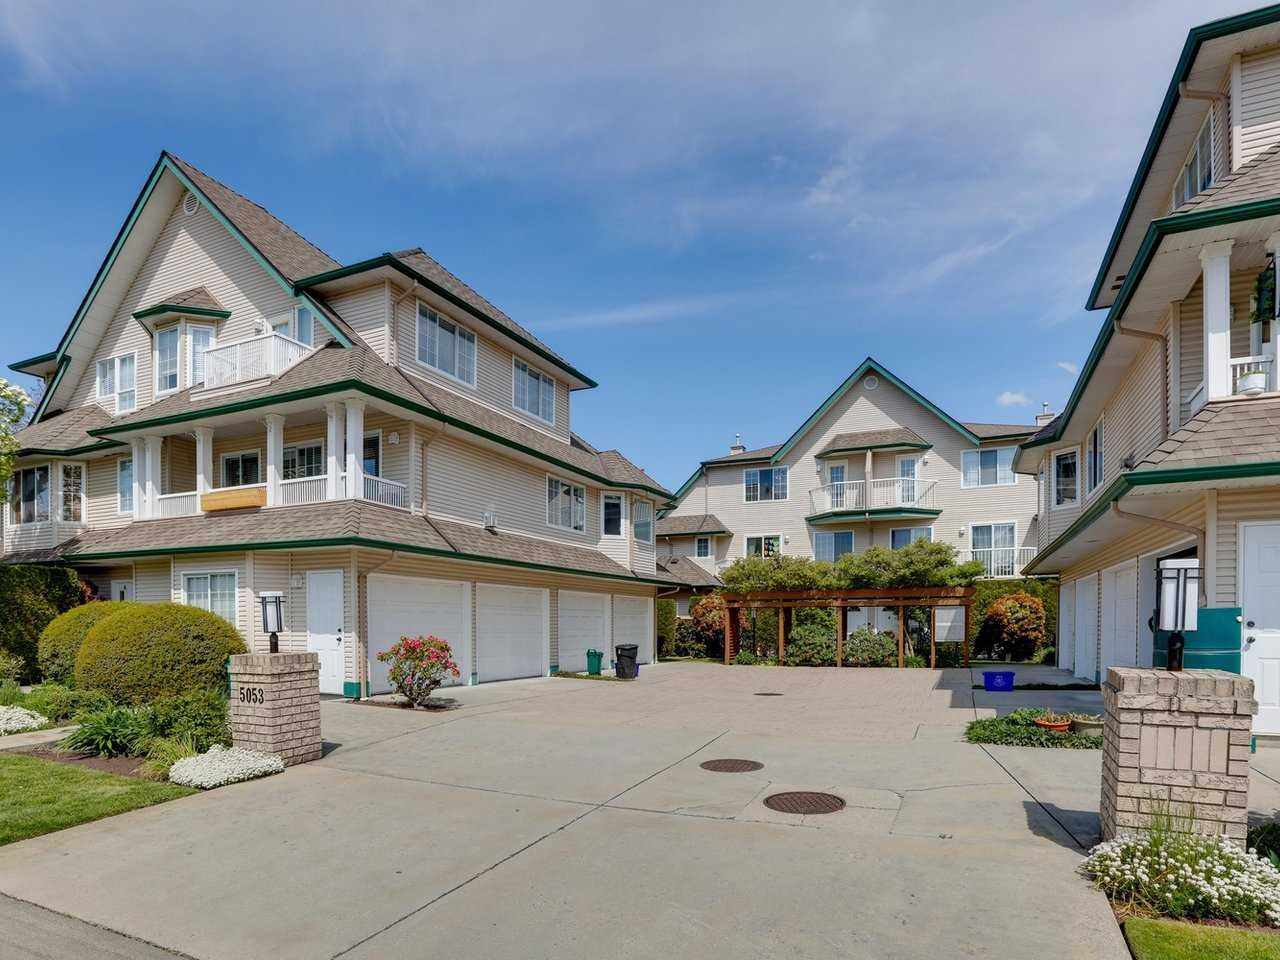 """Main Photo: 3 5053 47 Avenue in Delta: Ladner Elementary Townhouse for sale in """"PARKSIDE PLACE"""" (Ladner)  : MLS®# R2454031"""